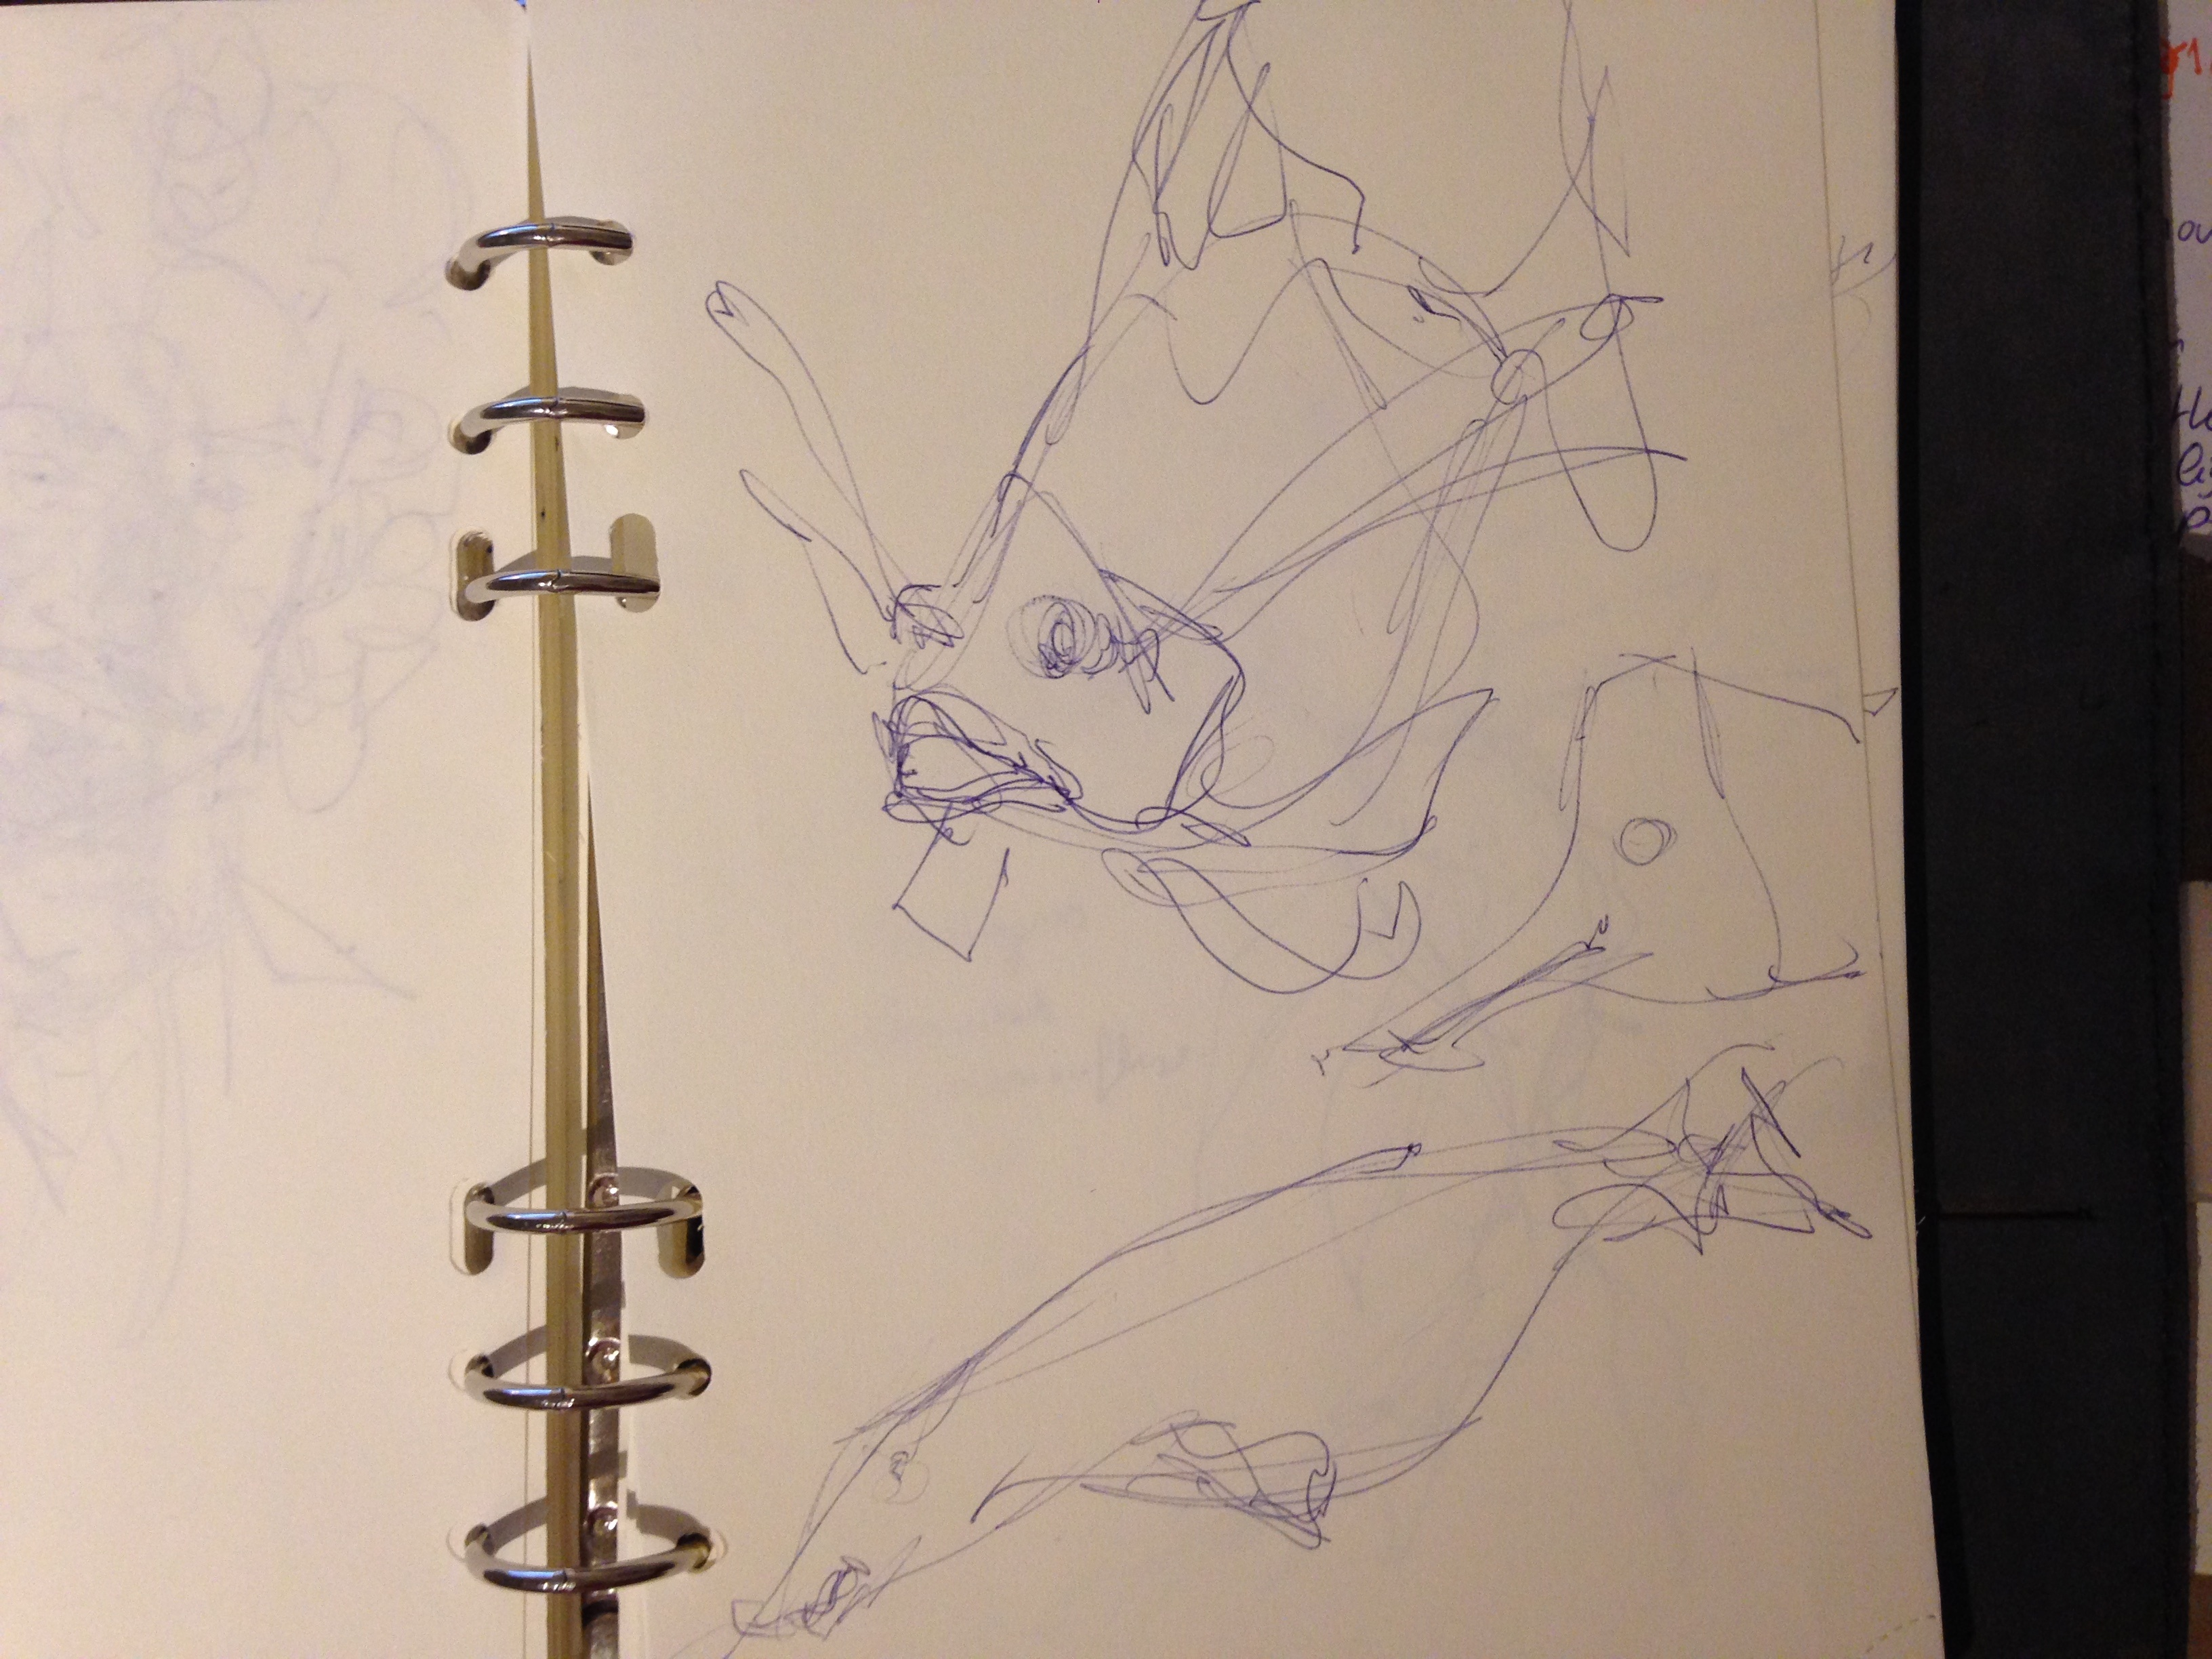 the design sketchbook sketch boston acquarium fish drawing ball point pen blue bic gh